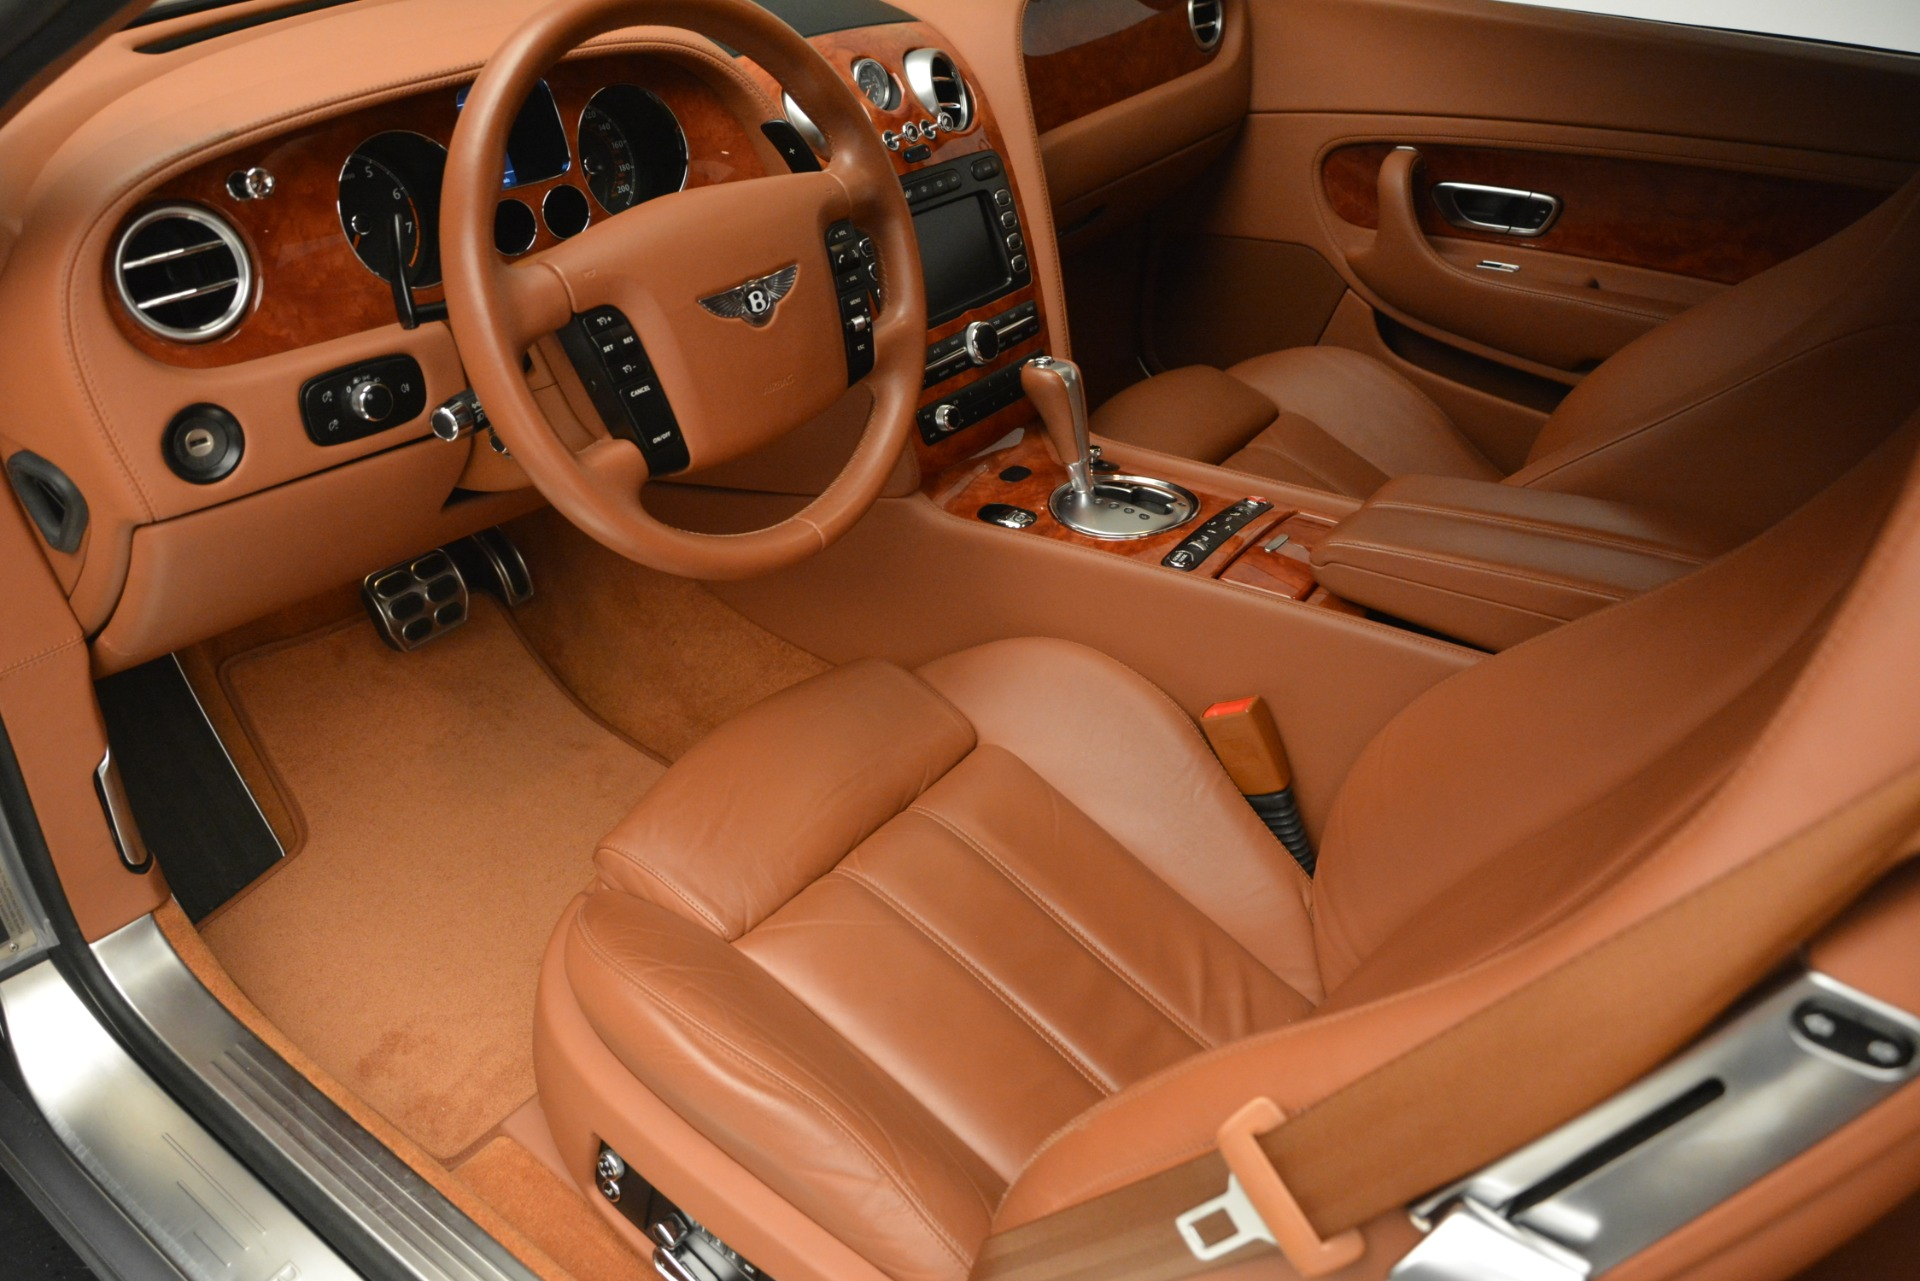 Used 2005 Bentley Continental GT GT Turbo For Sale In Westport, CT 2726_p17